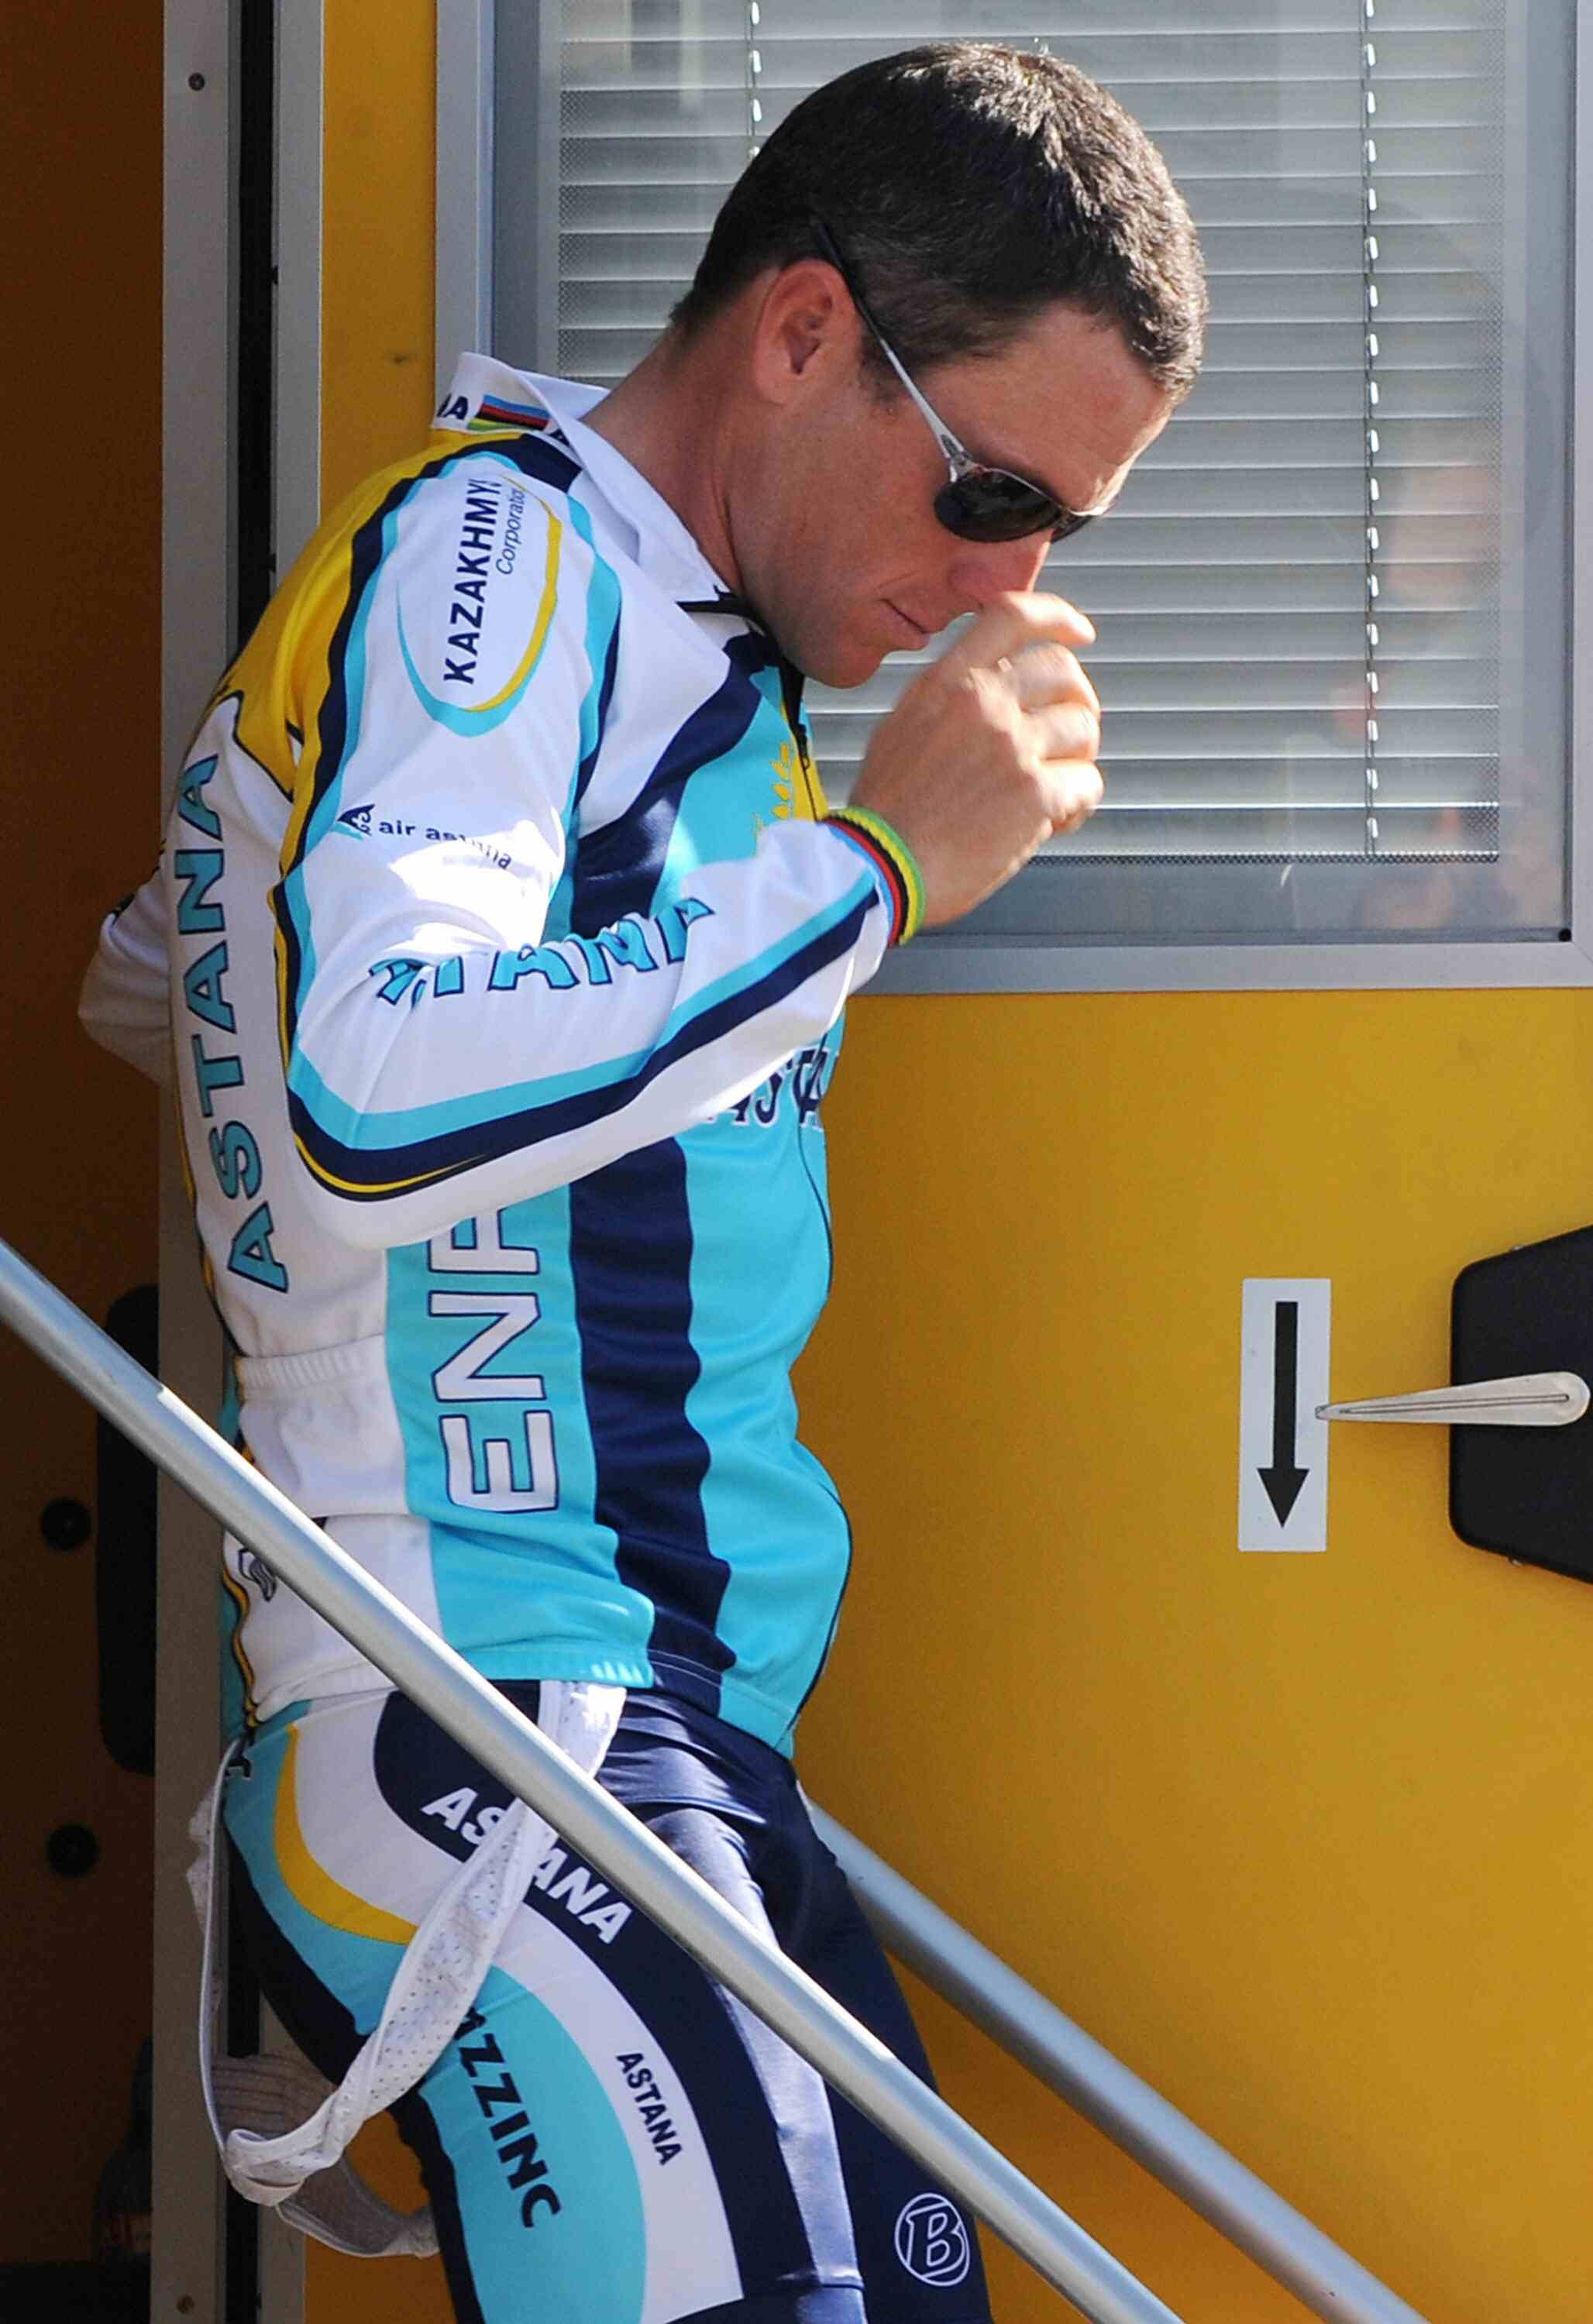 Lance Armstrong leaves the Tour's anti-doping control after the team time trial.